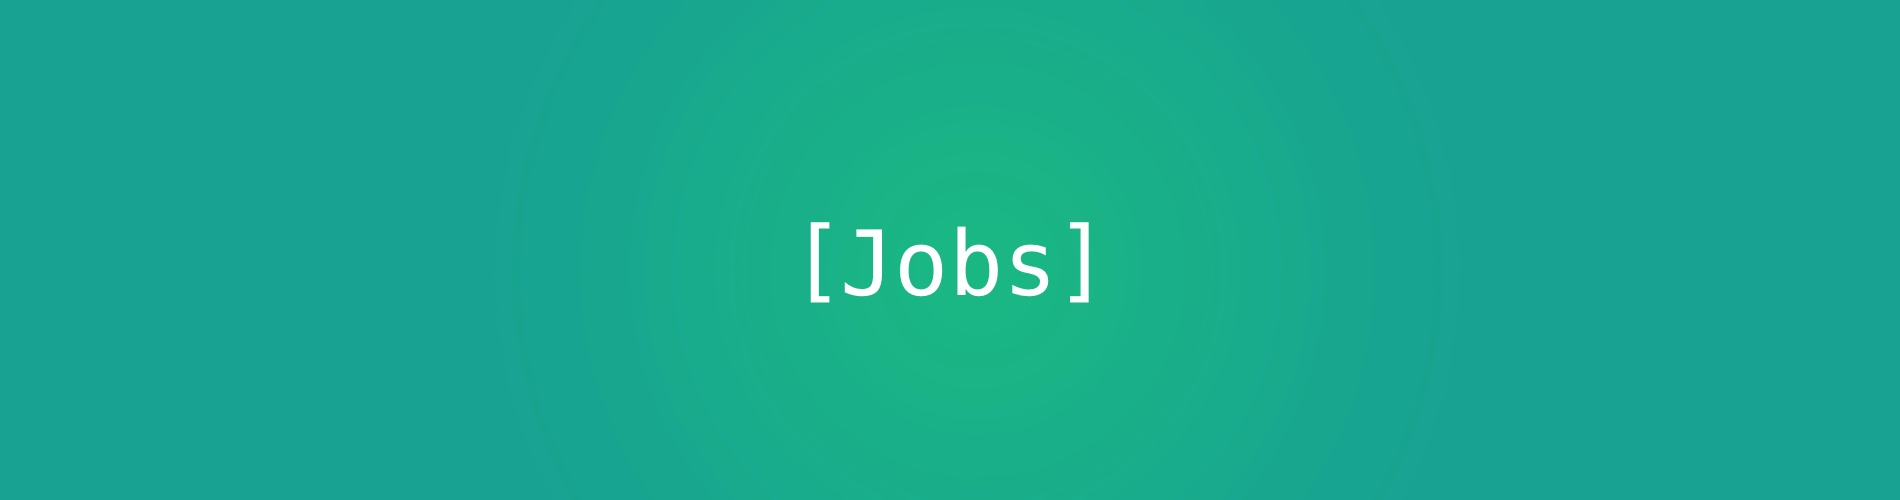 Jobs feature image